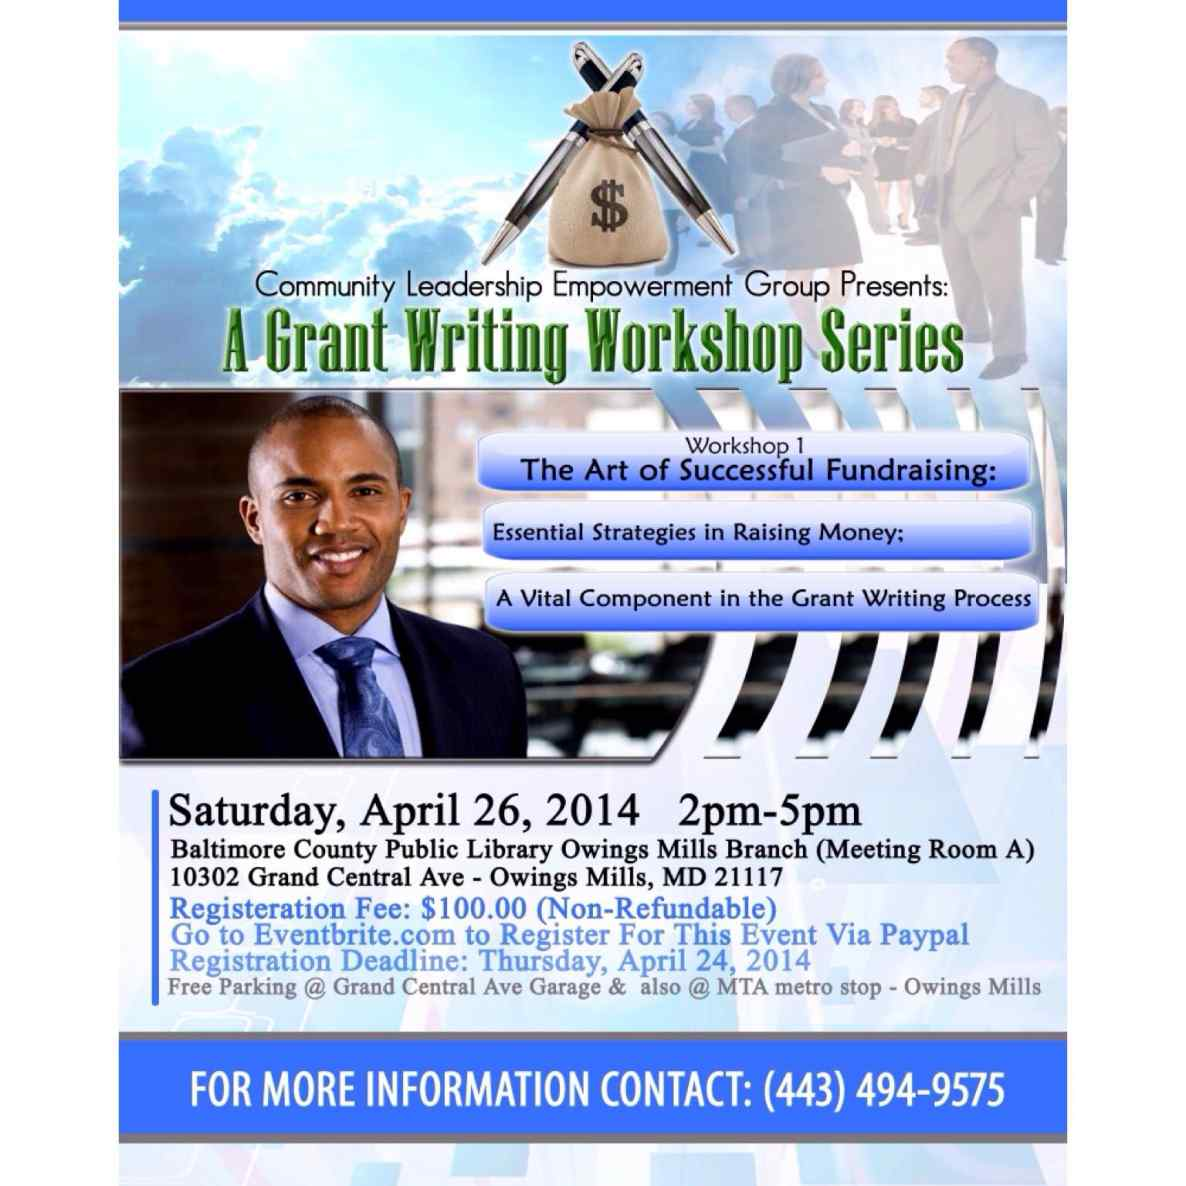 The Art of Successful Fundraising April 26 2014